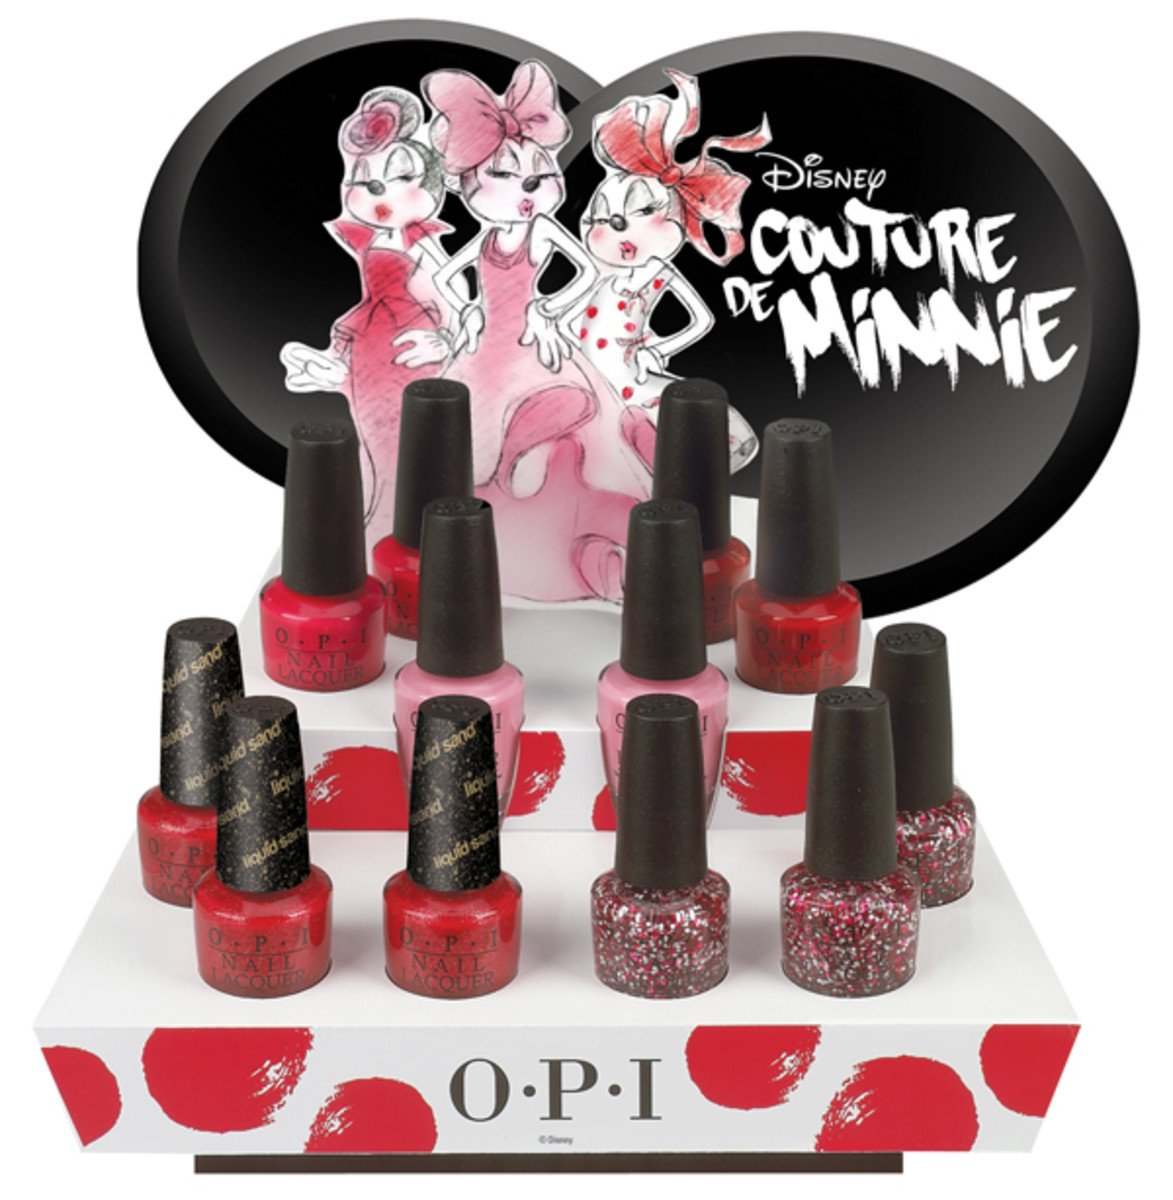 OPI Couture de Minnie display